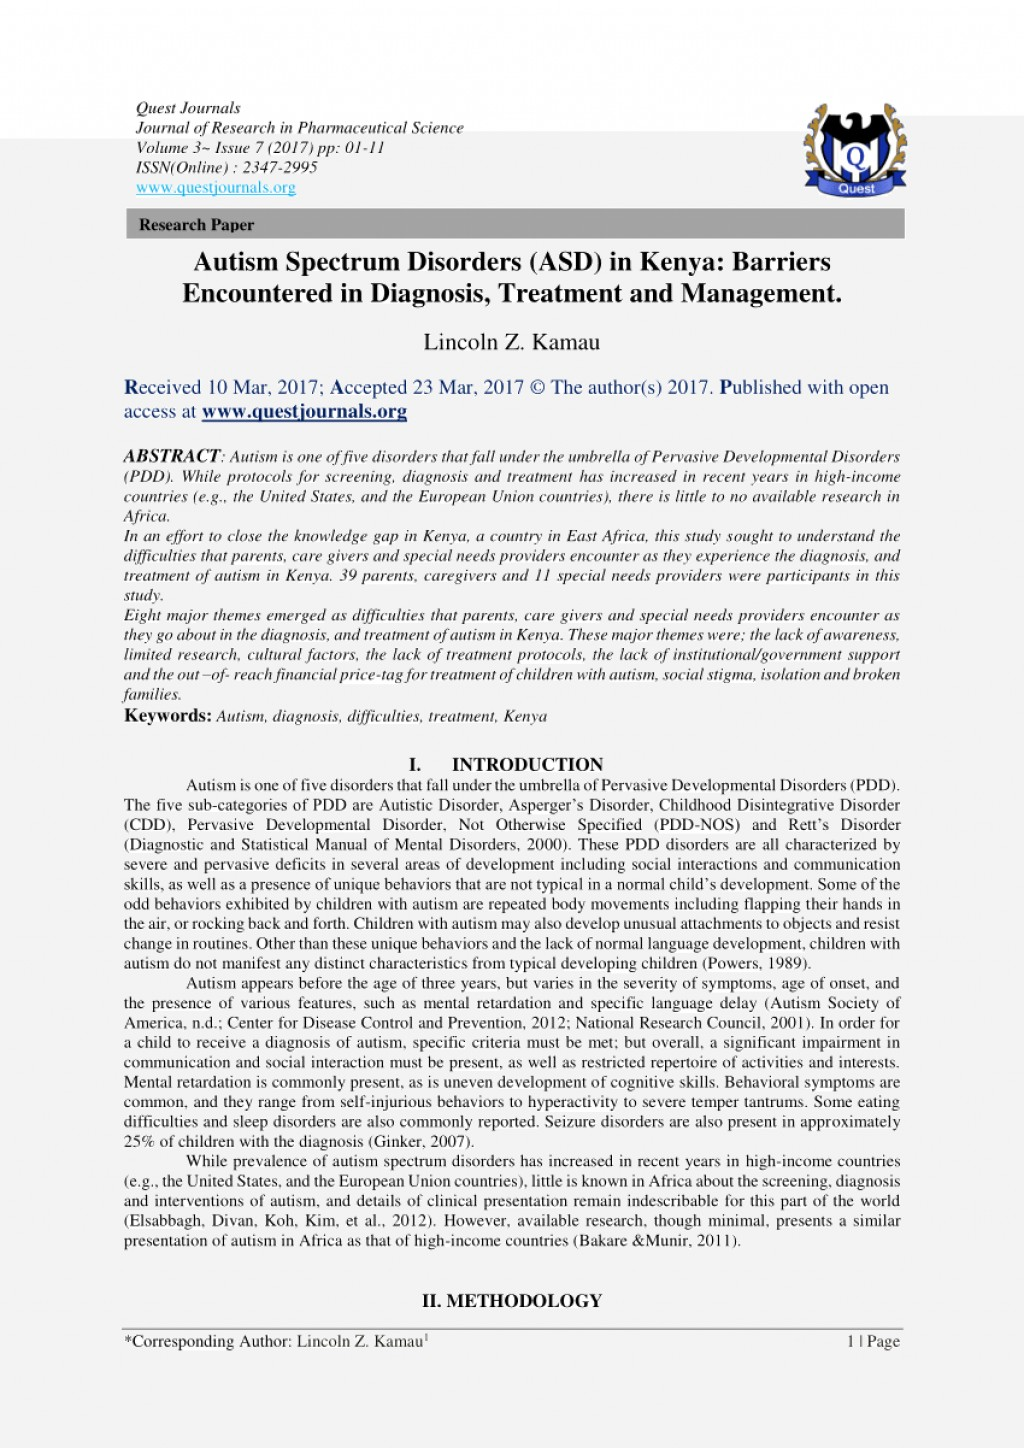 003 Research Paper Essay On Autism Spectrum Disorder Review Article Disorders Paper20 Awesome Papers Topics Large